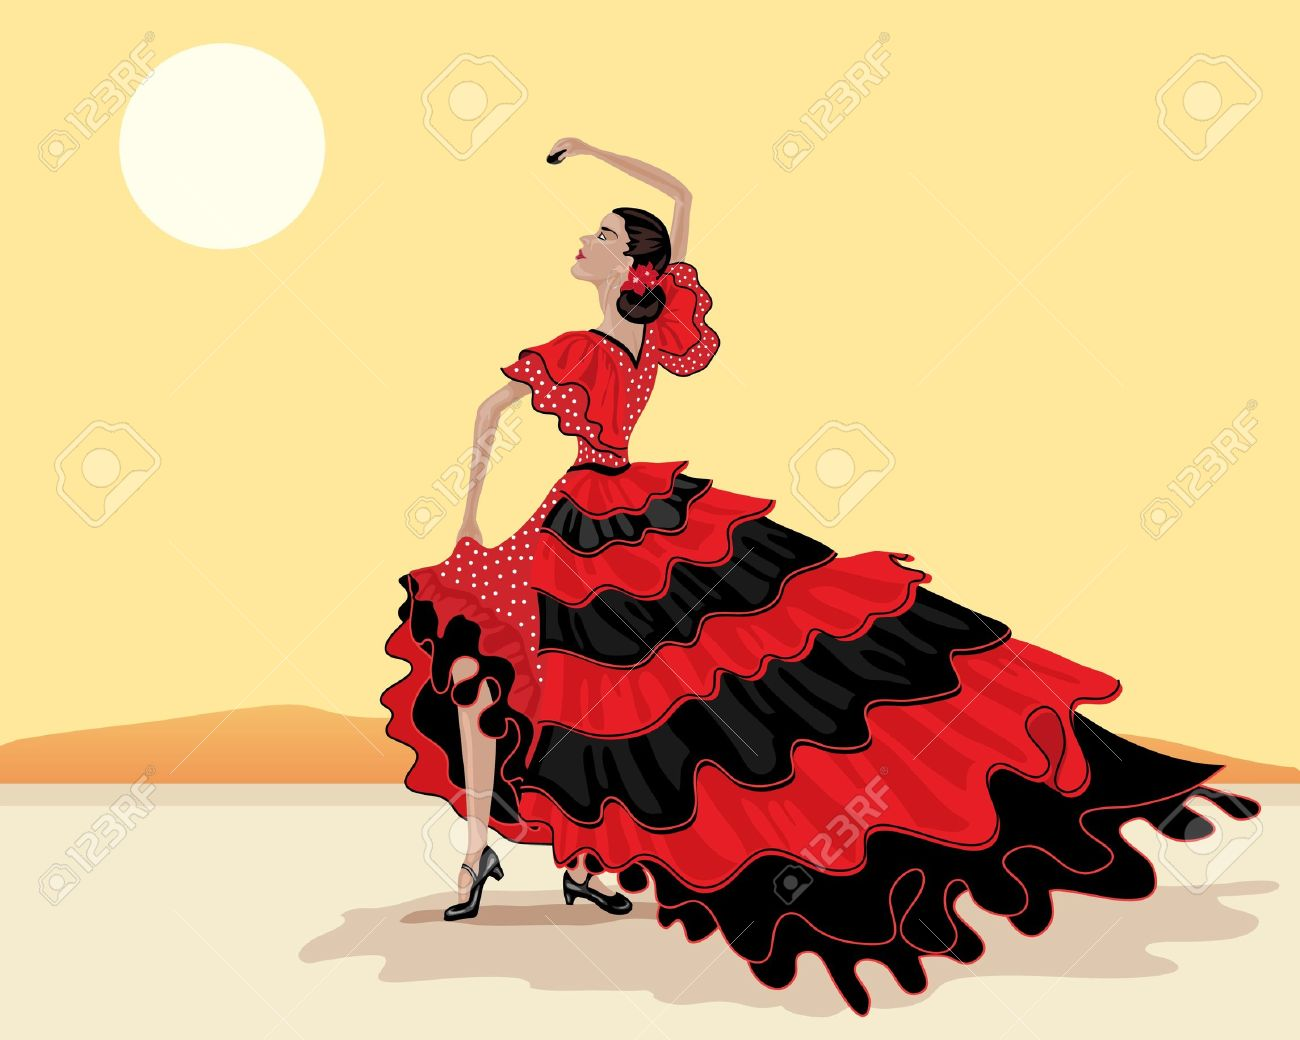 An Illustration Of A Spanish Flamenco Dancer In A Beautiful Polka Royalty Free Cliparts Vectors And Stock Illustration Image 10517186